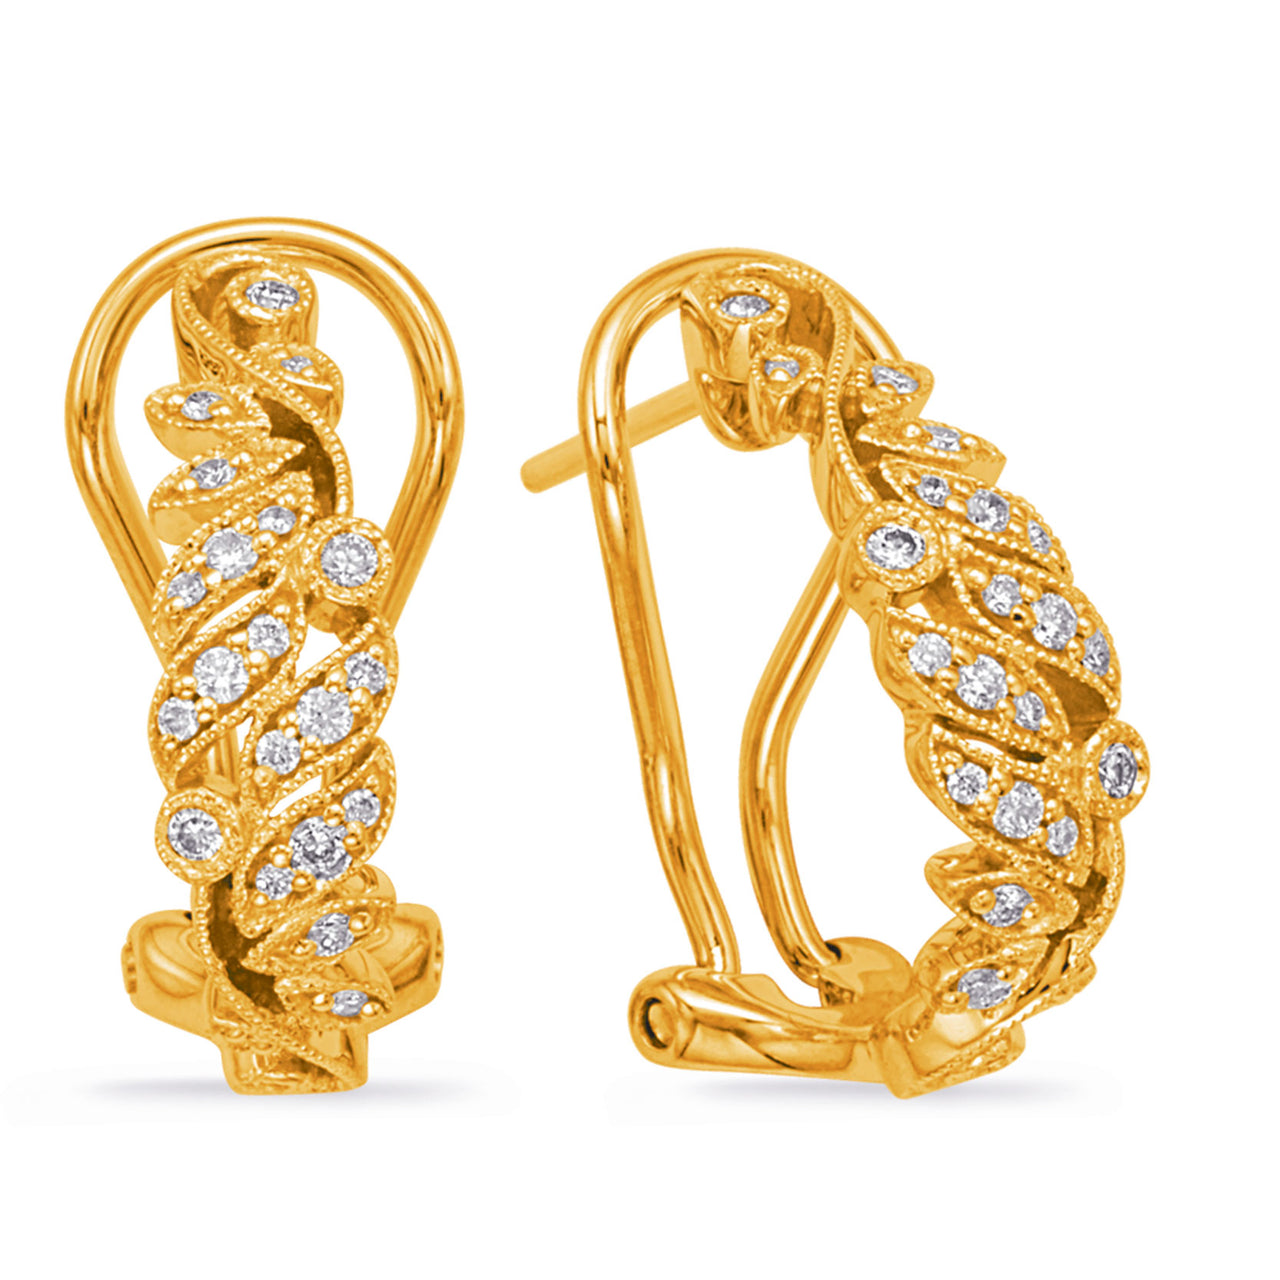 14K Yellow Gold and Diamond Earrings. #1090-E7996YG